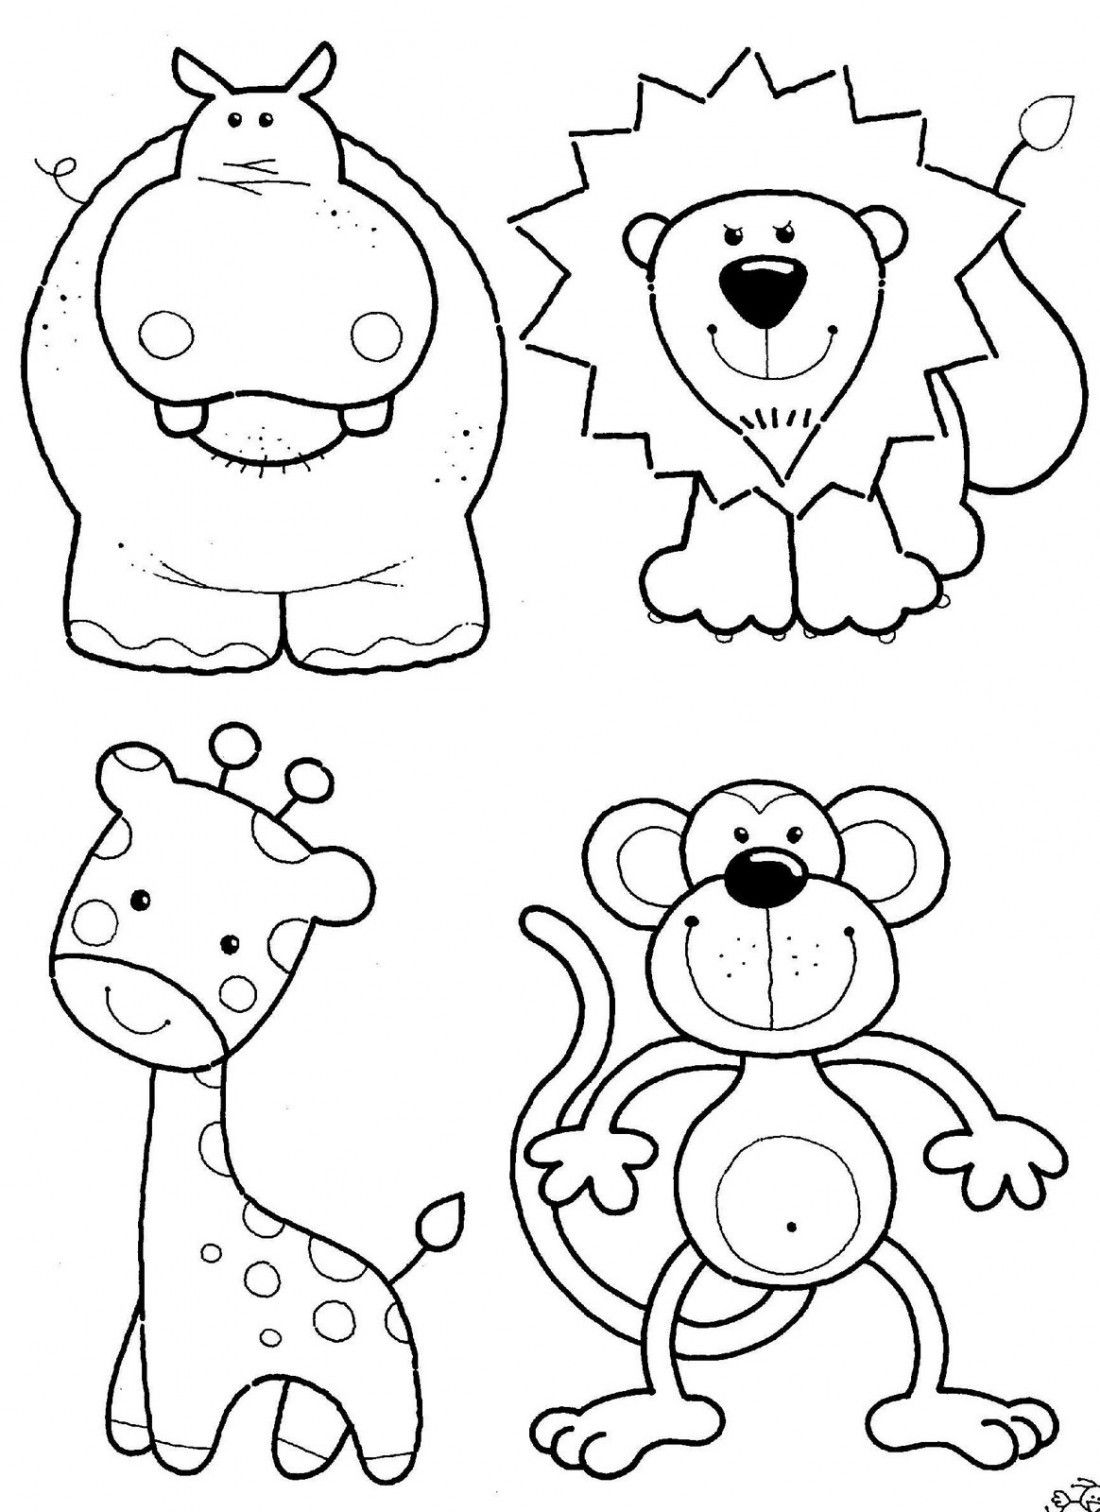 Animal Coloring Pages For Kids Free | Coloring Pages | Pinterest ...